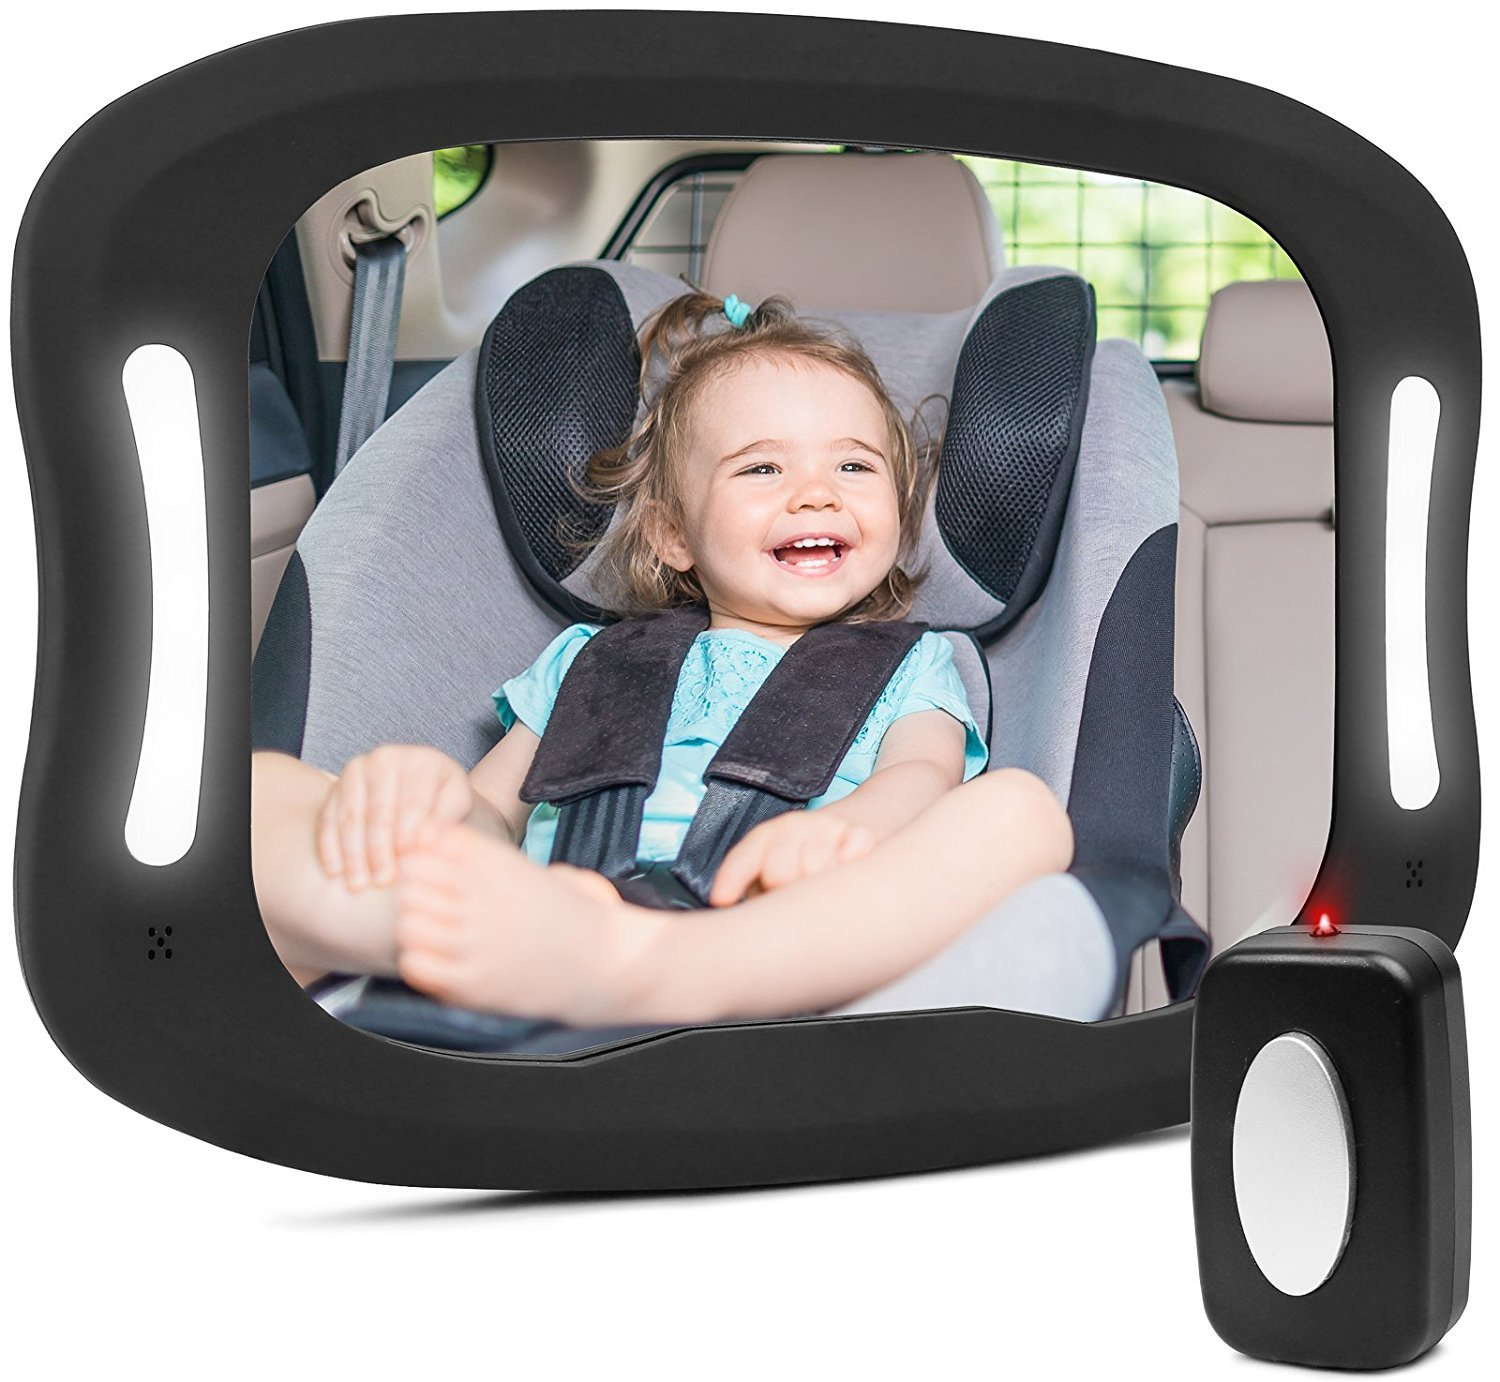 Shatterproof Baby Car Mirror LED Light Easy to Install Anti-Wobble Fixing Straps Fits All Vehicles 360/° Adjustable View Child in Rear Facing Car Seat with Superior View /& Clarity TRY NOW!